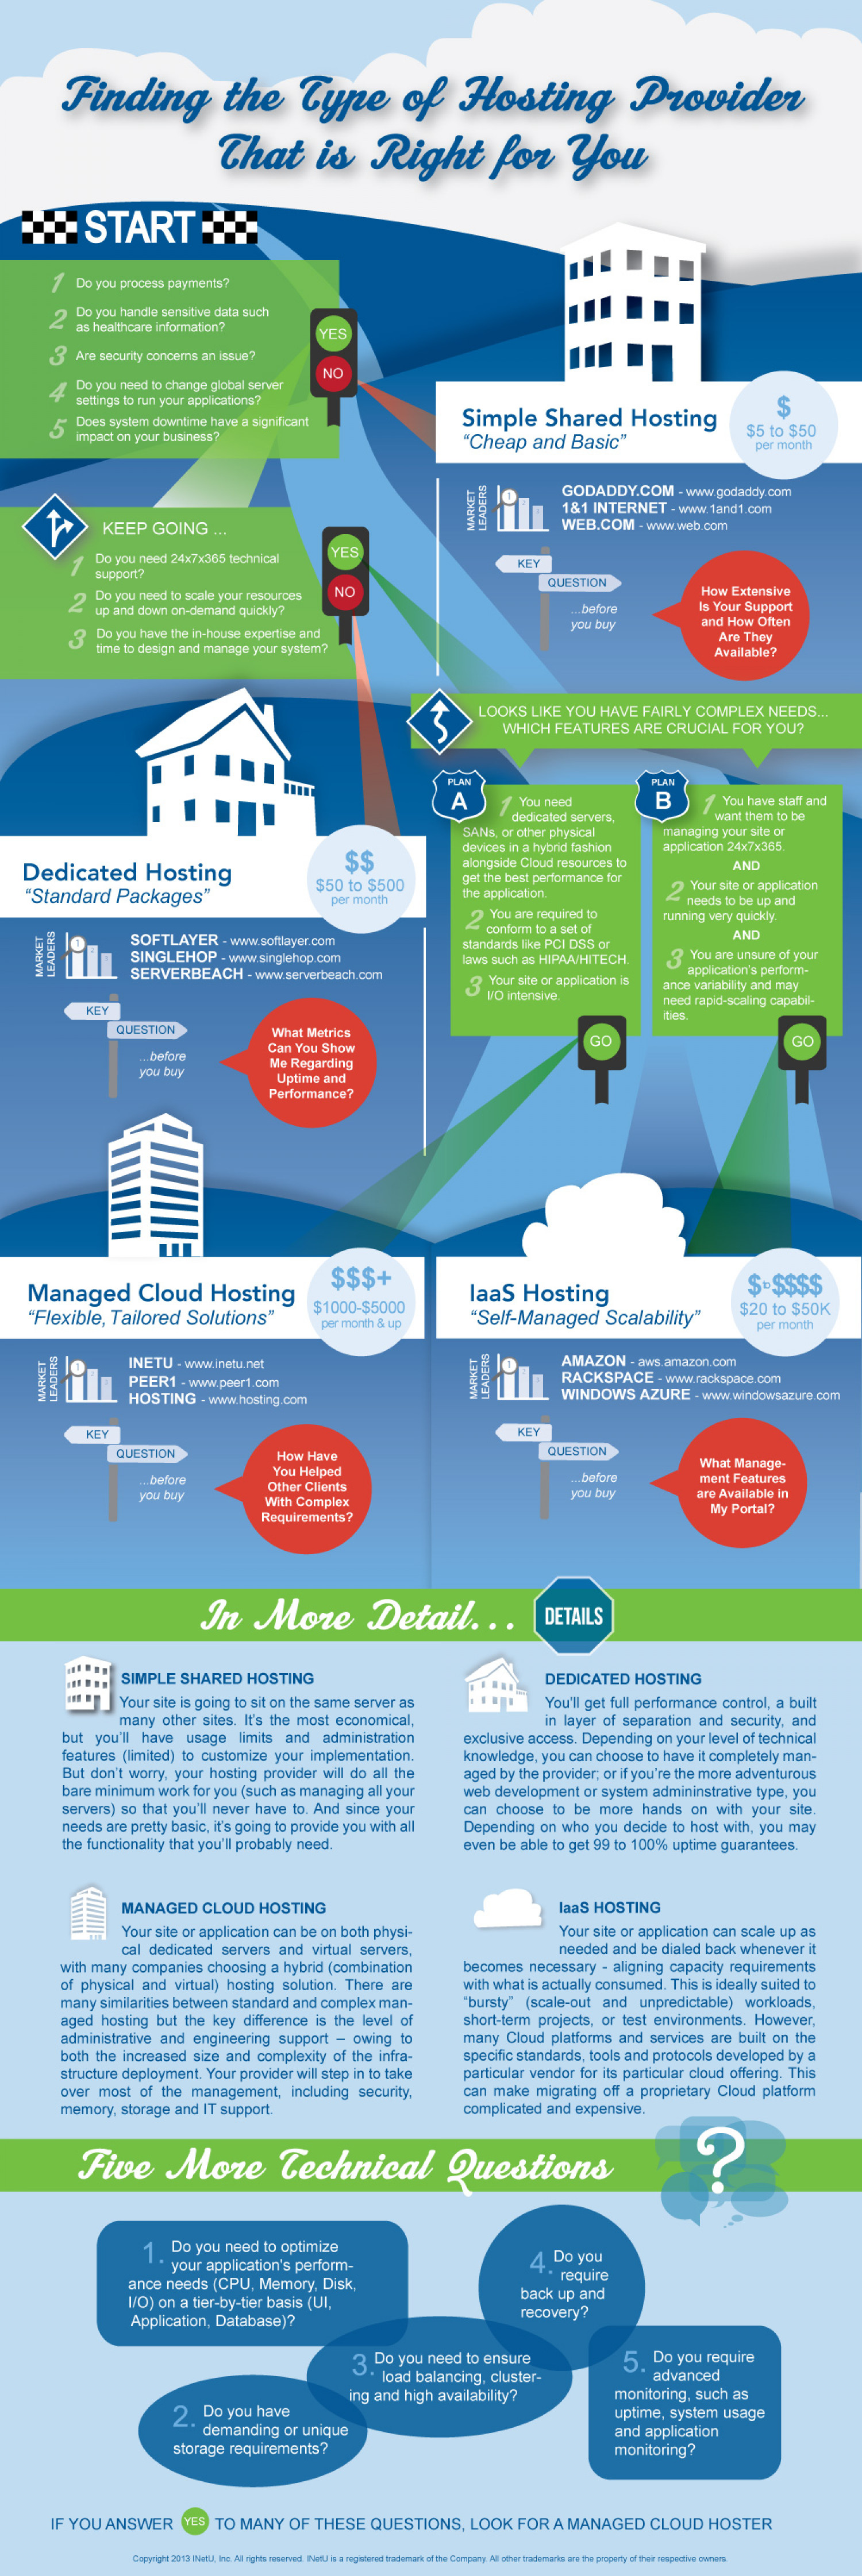 Finding the Type of Hosting Provider That is Right for You Infographic